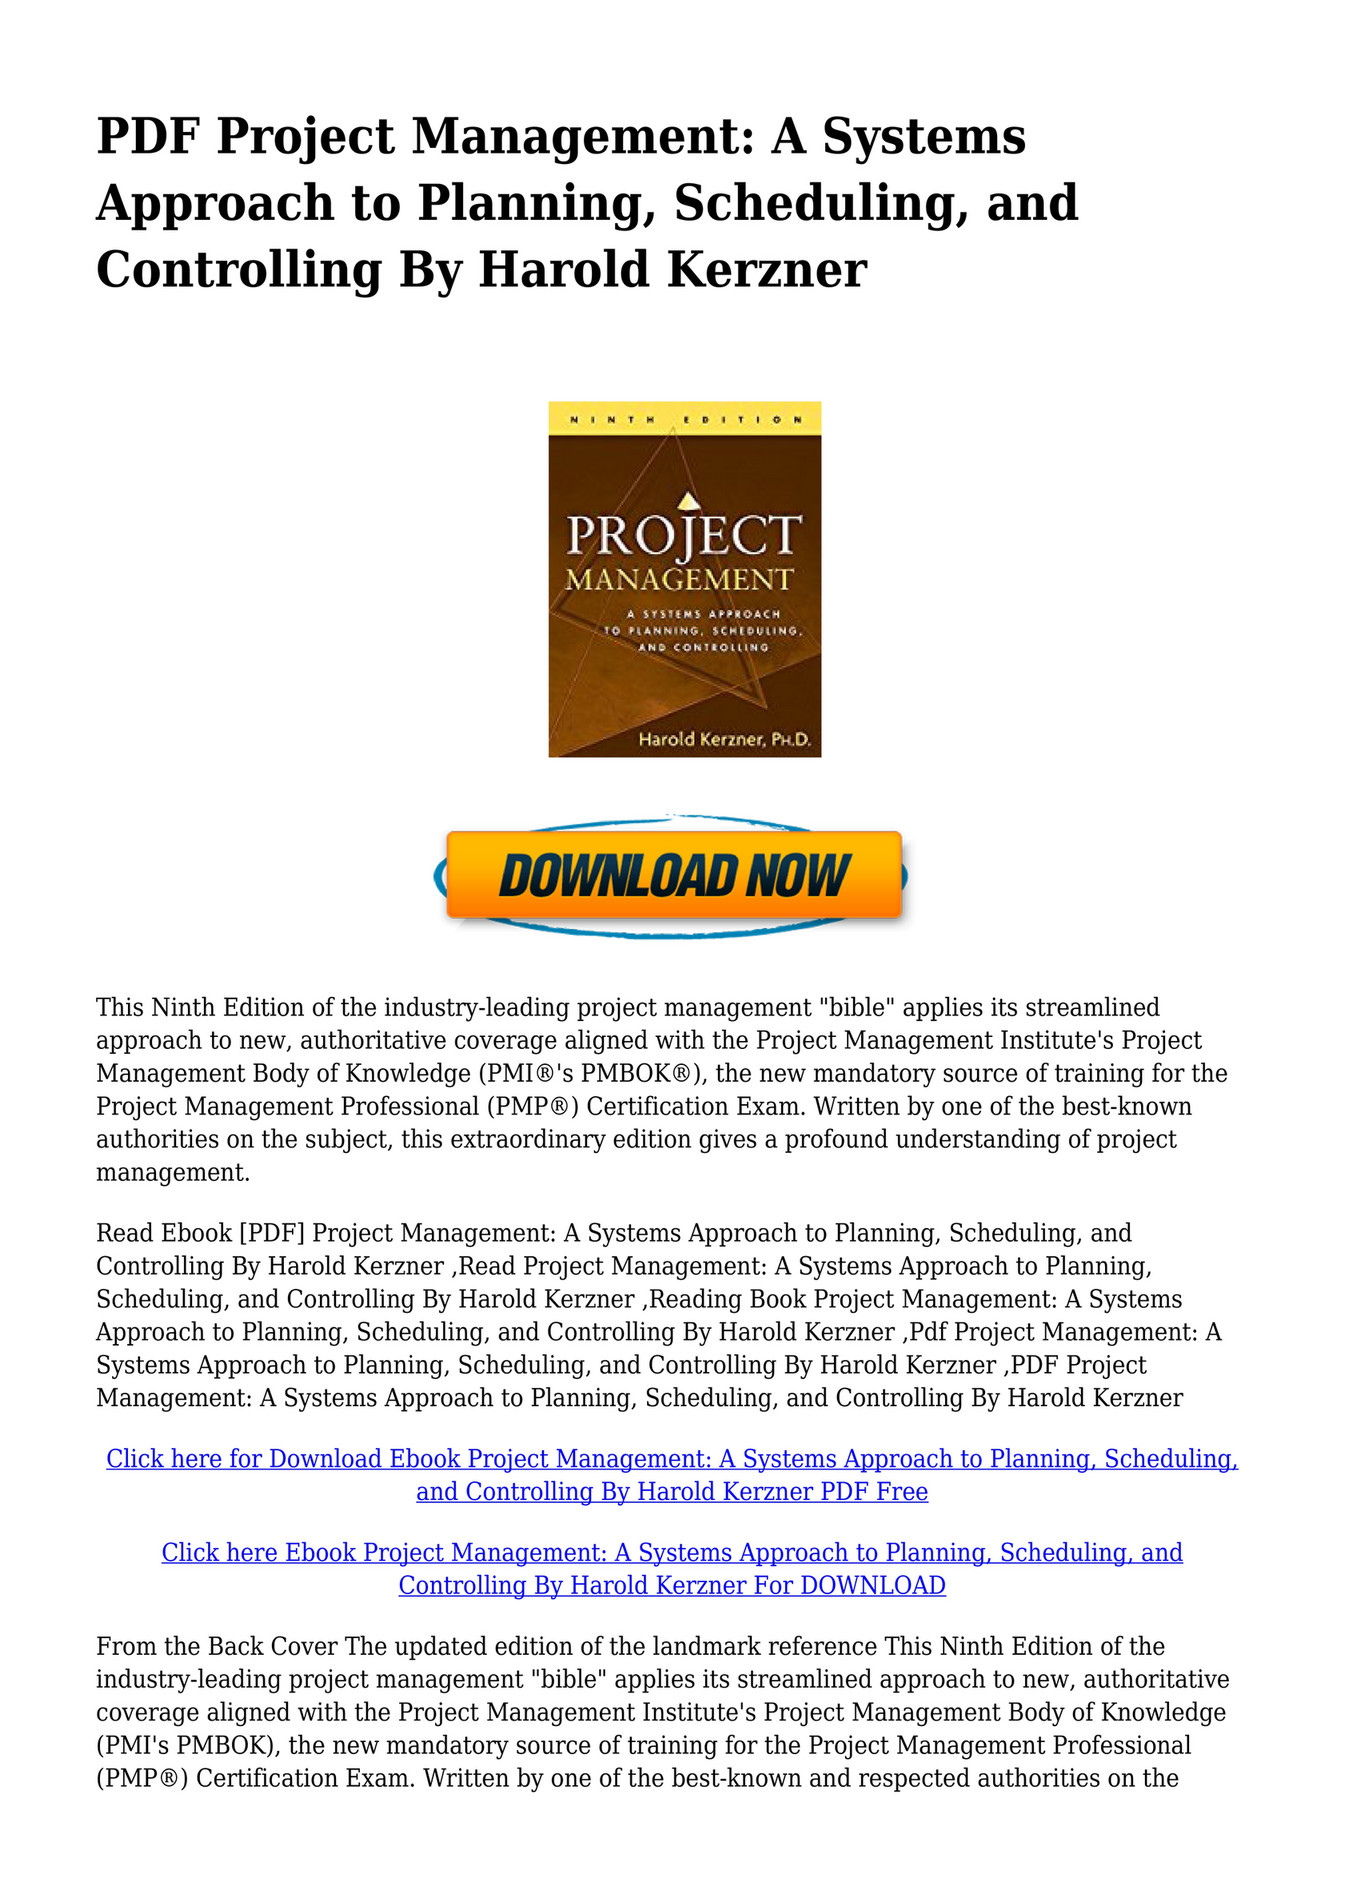 pdf - project management a systems approach to planning